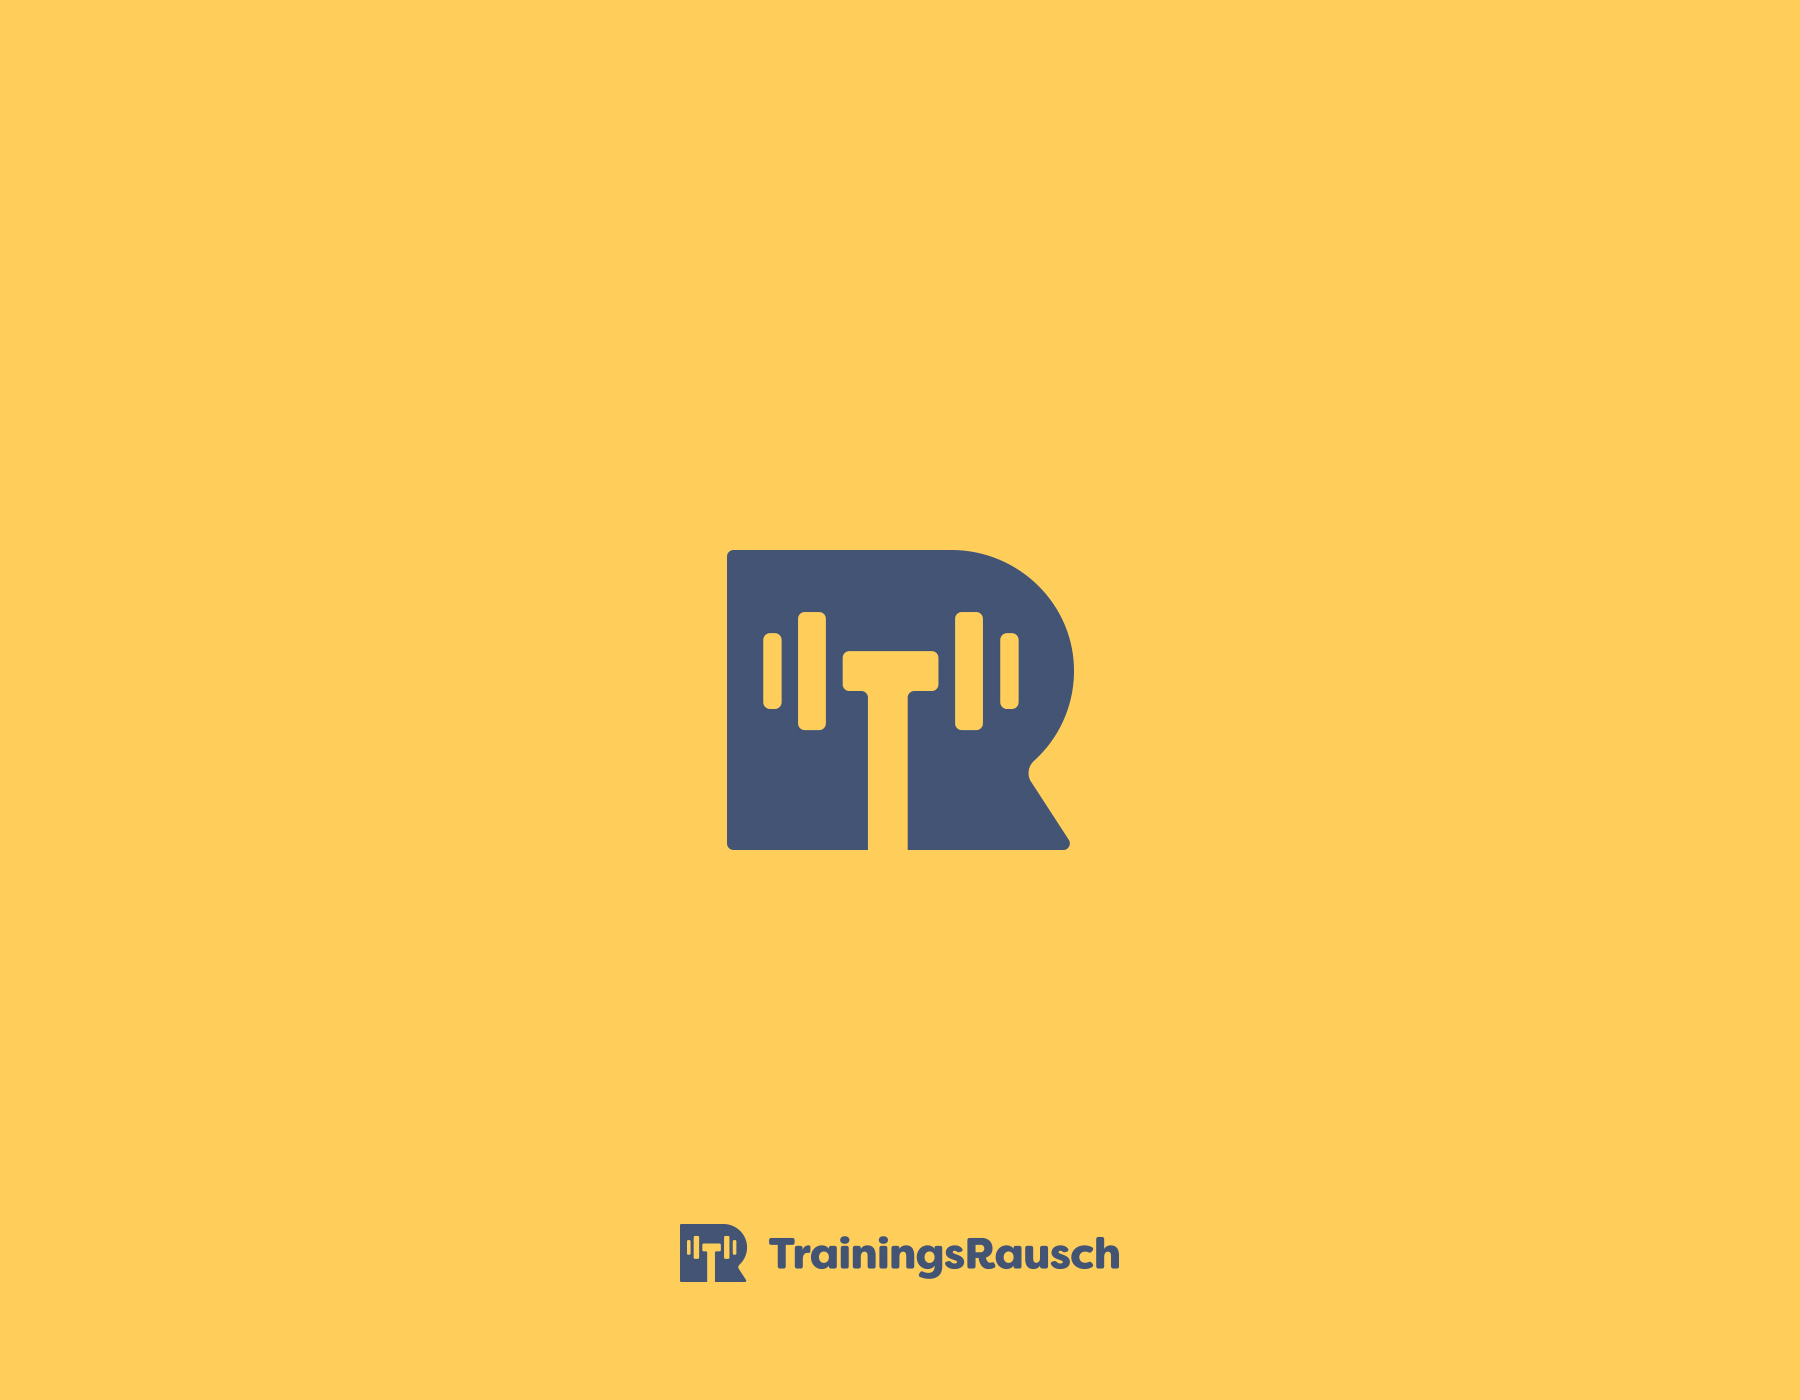 Creative logos with hidden symbolic meaning - TrainingRausch